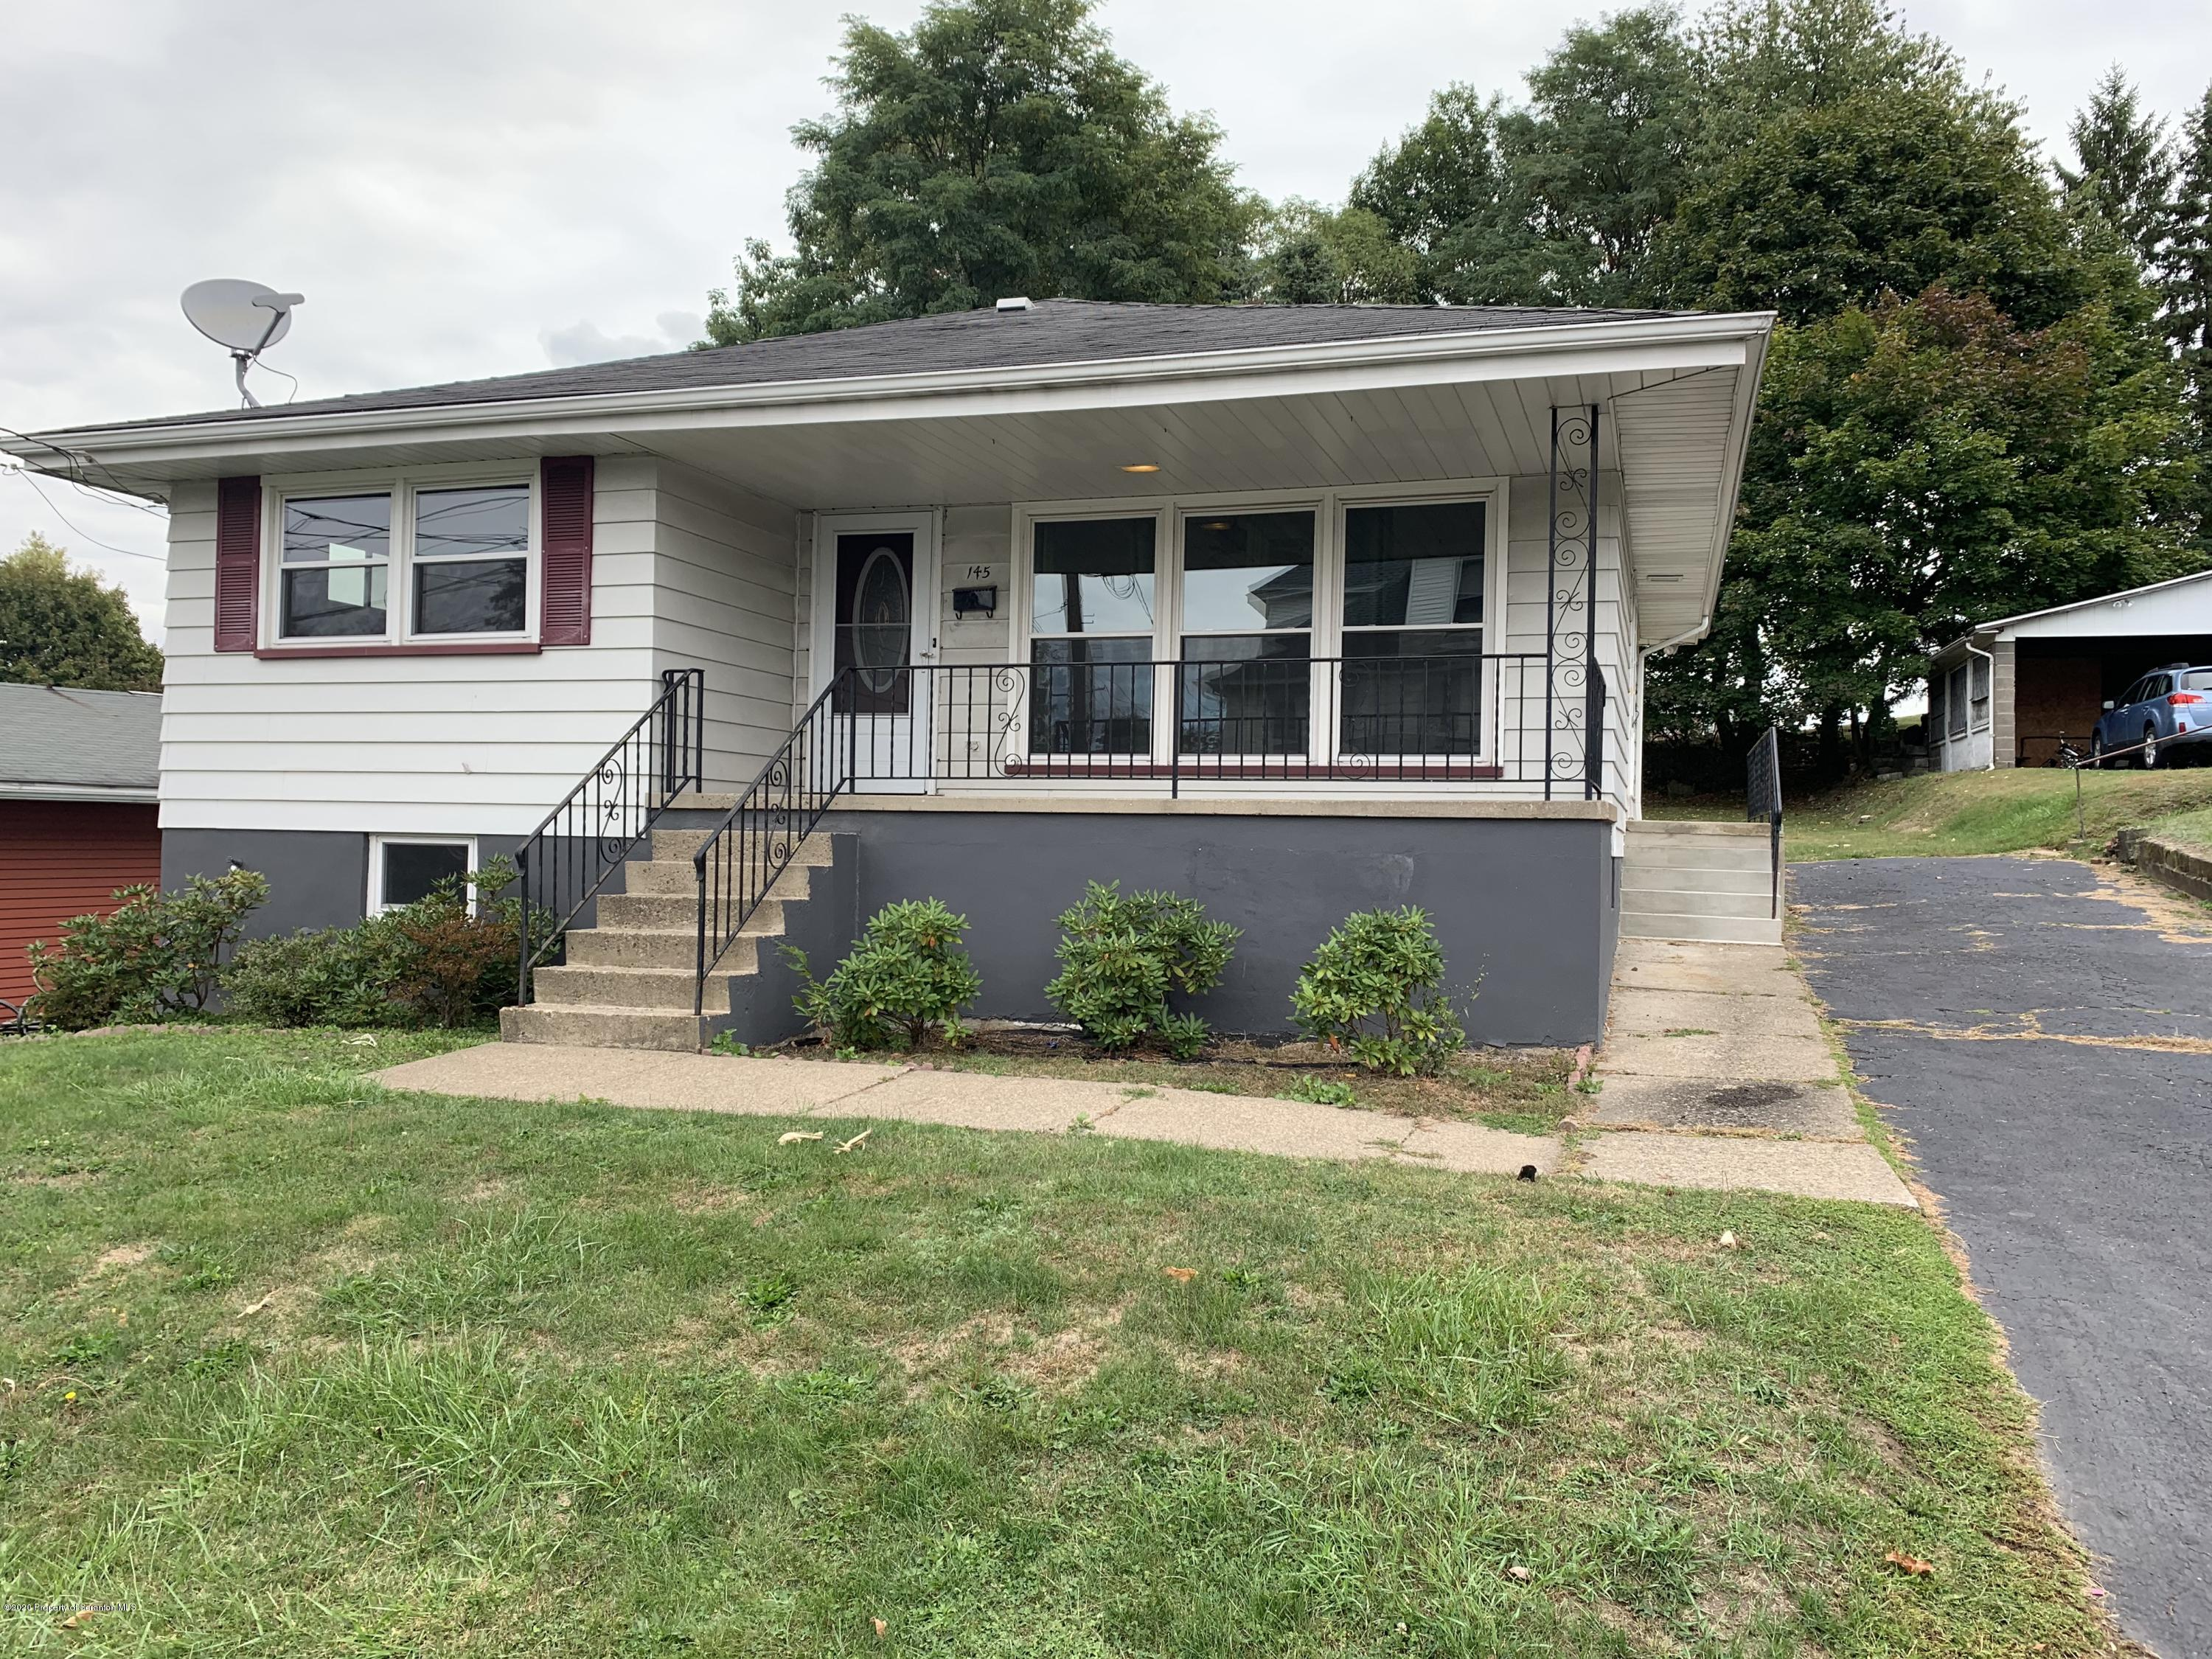 145 Hill St, Dunmore, Pennsylvania 18512, 2 Bedrooms Bedrooms, 4 Rooms Rooms,2 BathroomsBathrooms,Single Family,For Sale,Hill,20-4230